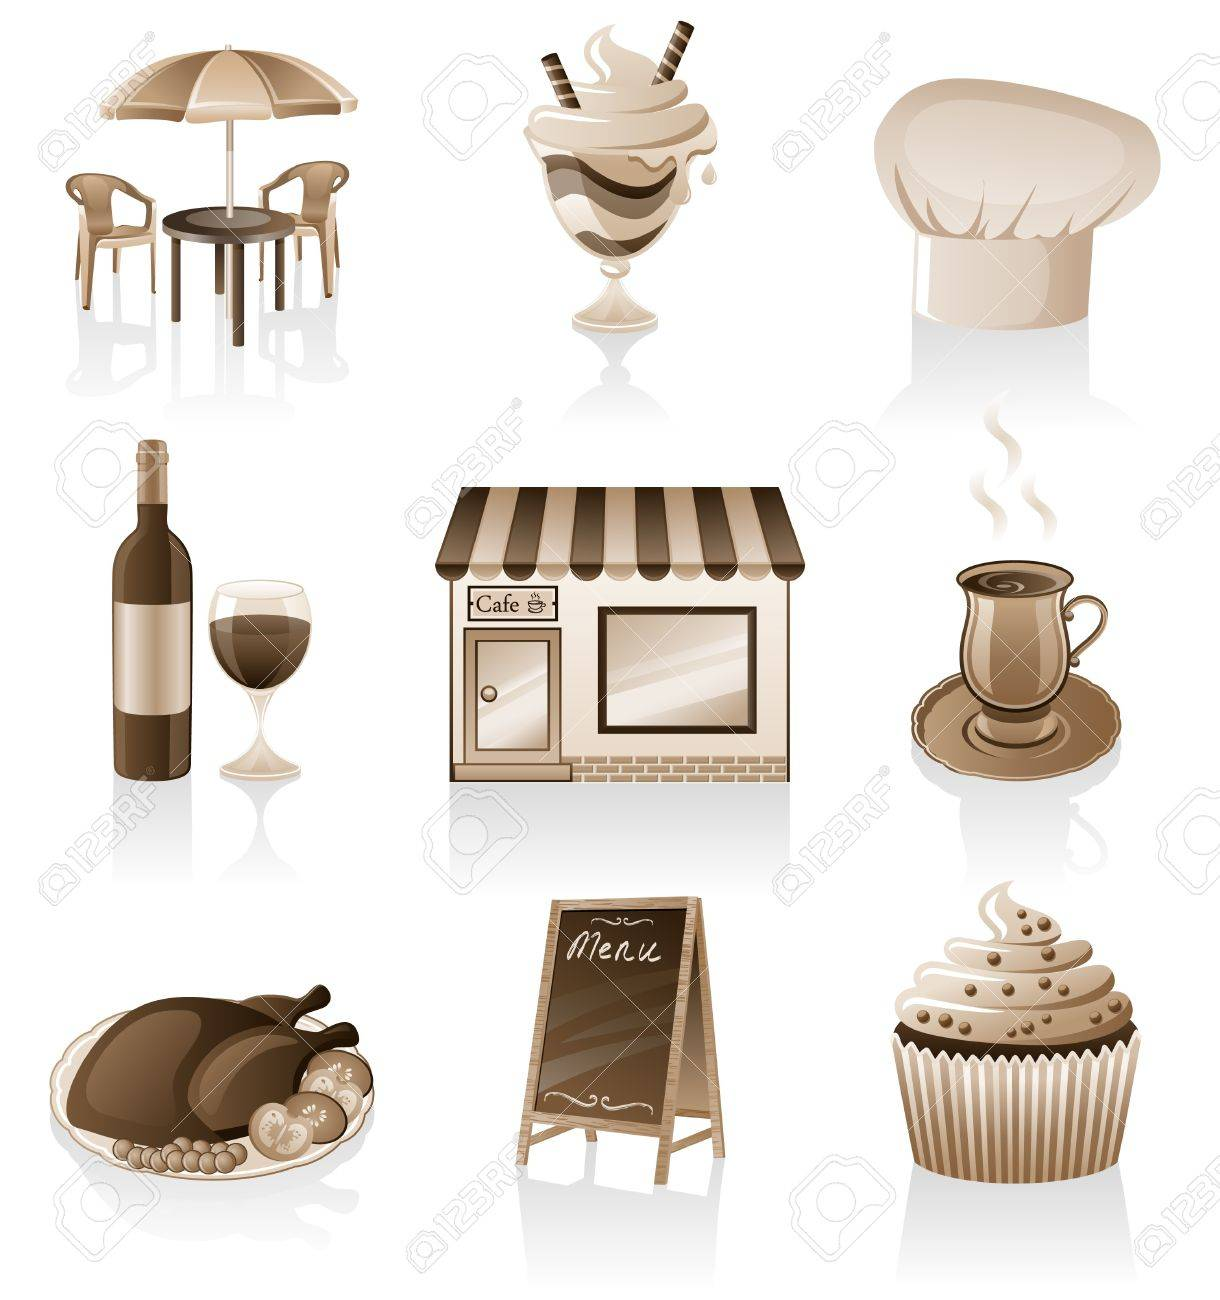 Vector cafe icon set isolated on white background. Stock Vector - 9804395